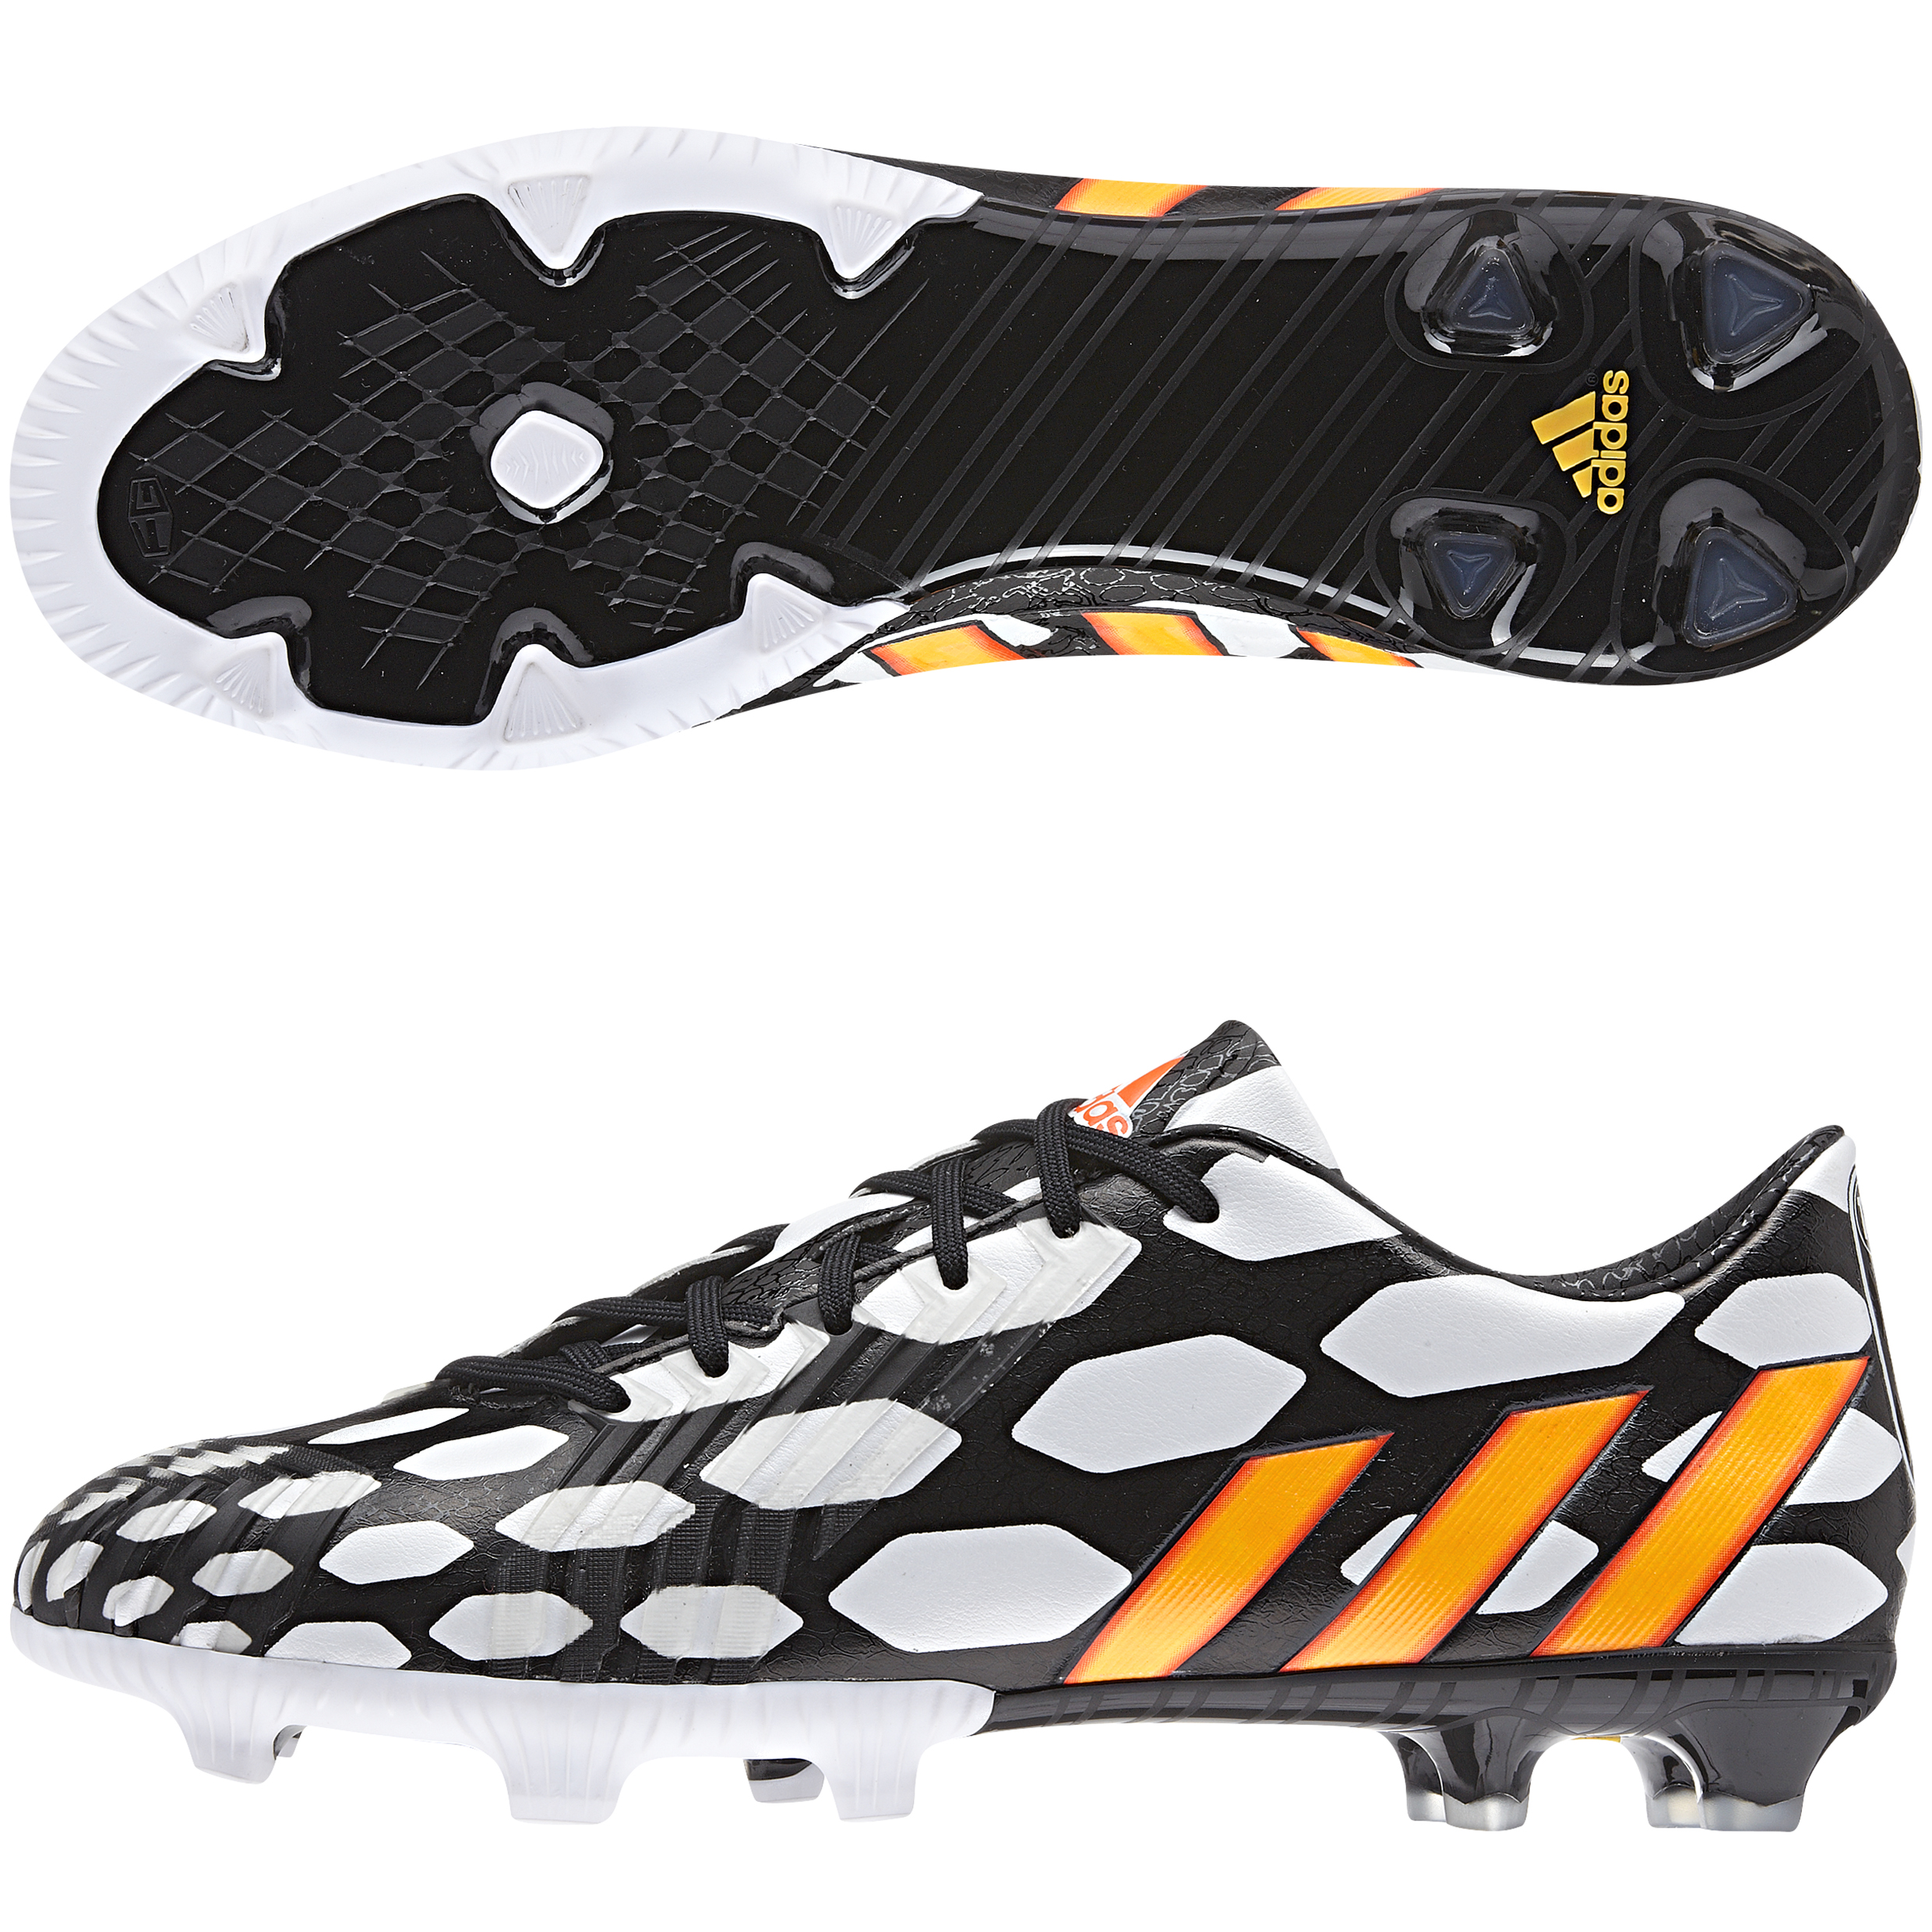 Adidas Predator Absolion LZ World Cup 2014 Firm Ground Football Boots Black